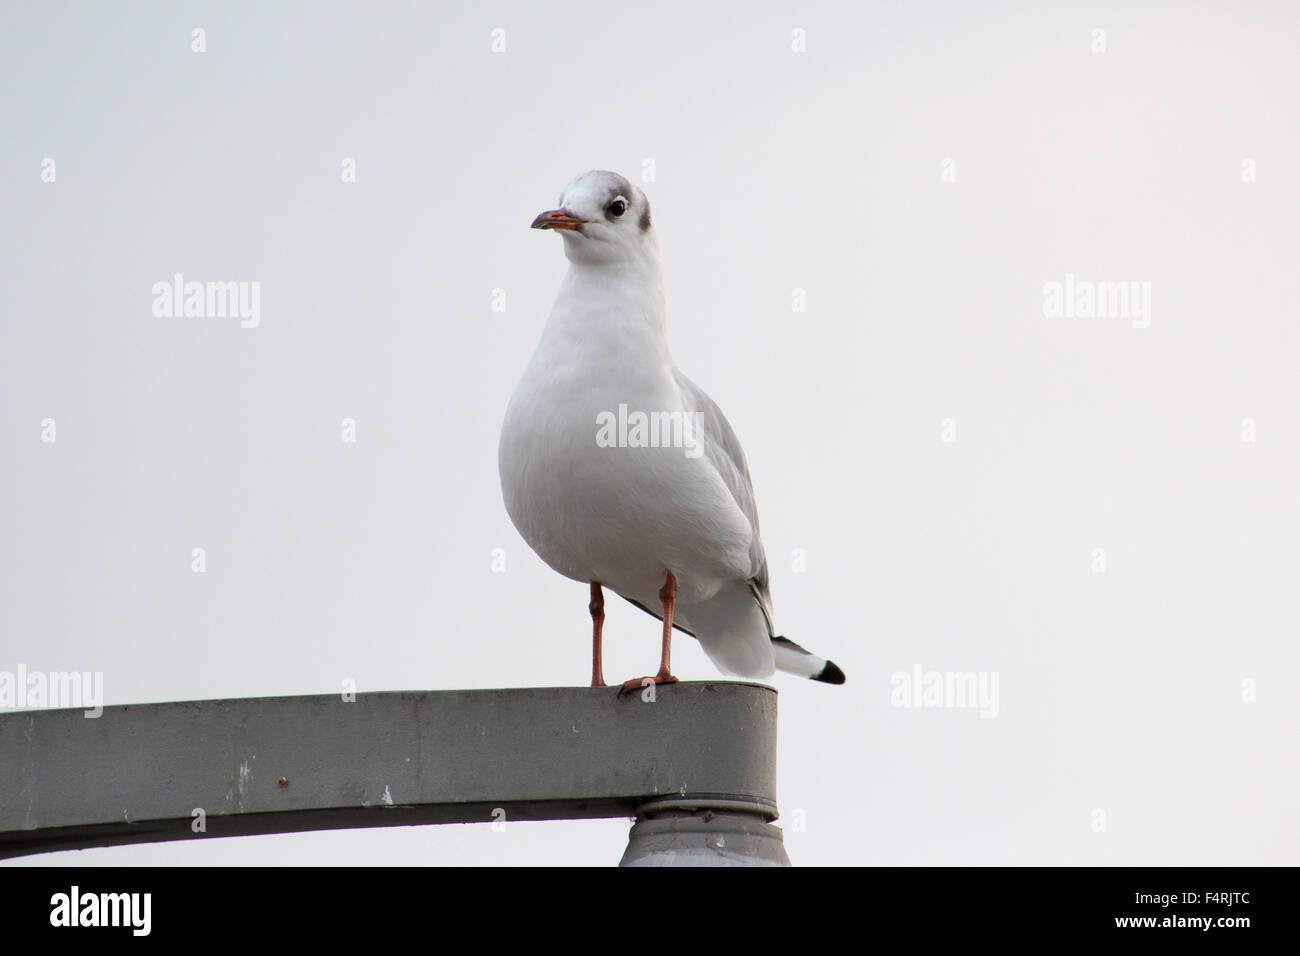 Common Gull (Larus canus) standing on a lam post. - Stock Image